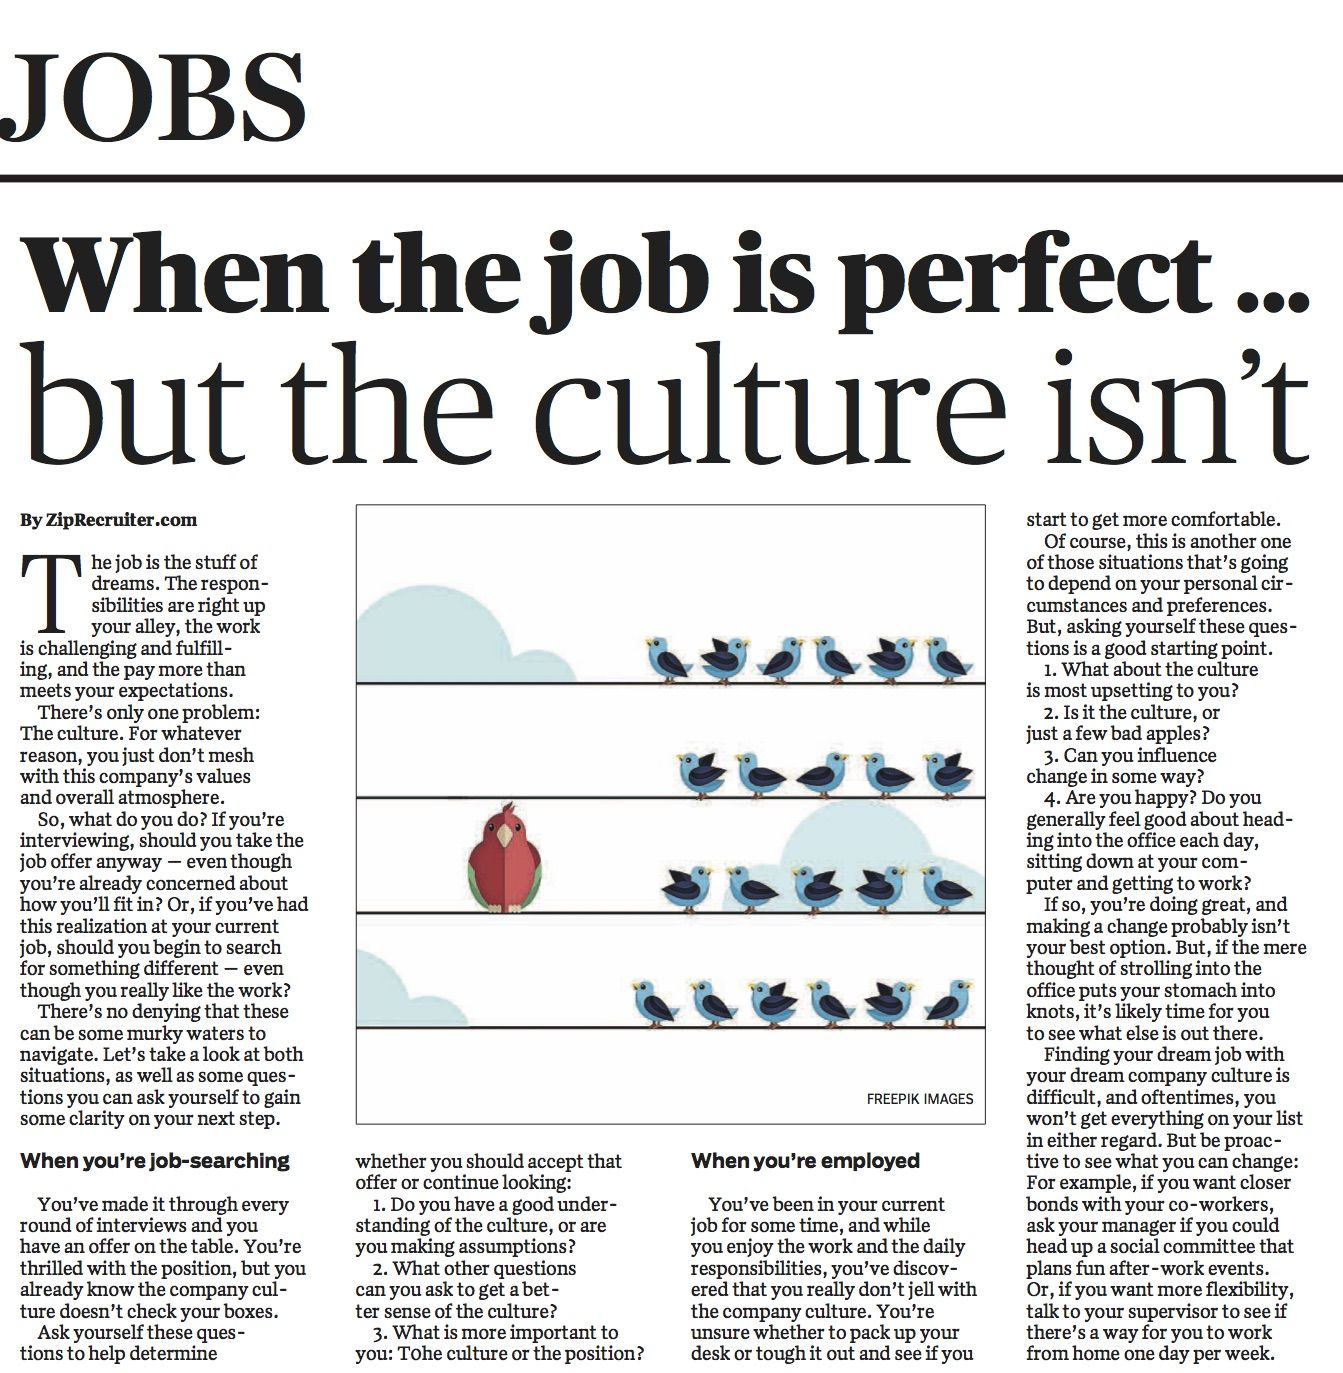 This Week Our Jobs Page Features This Article From @ziprecruiter On What To  Do About Job Culture Whether You're Job Searching Or Currently Employed.